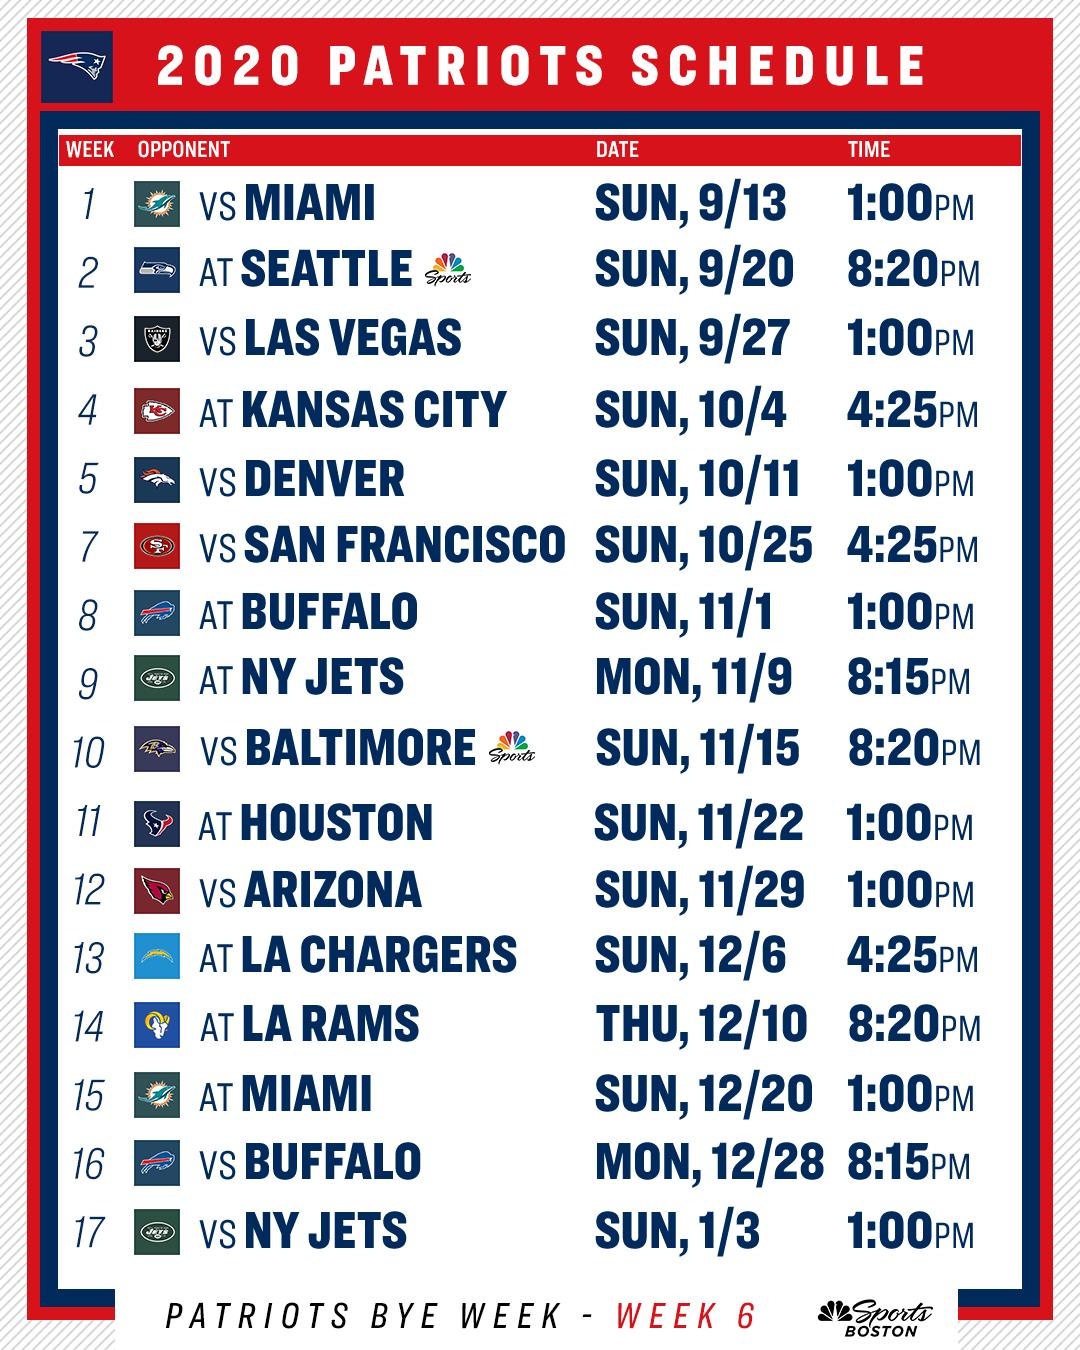 2020 Nfl Schedule: Complete Viewers Guide To Patriots